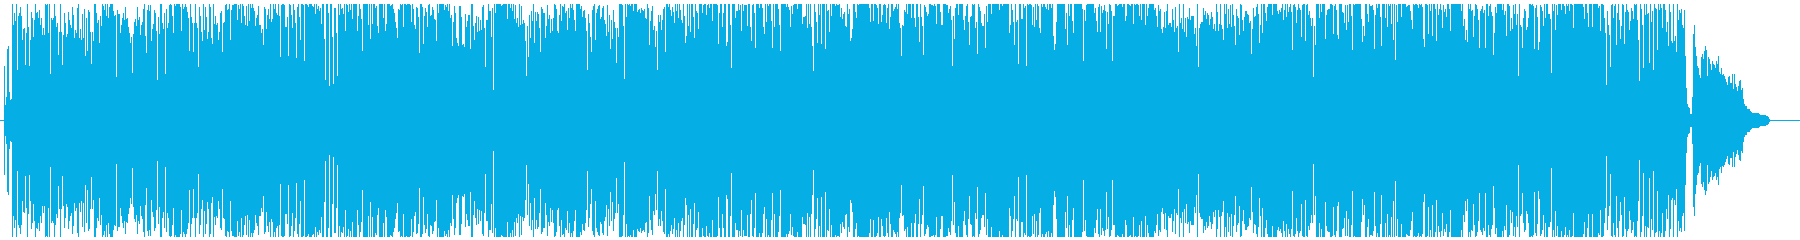 Fashionable and retro BGM of trumpet's reproduced waveform